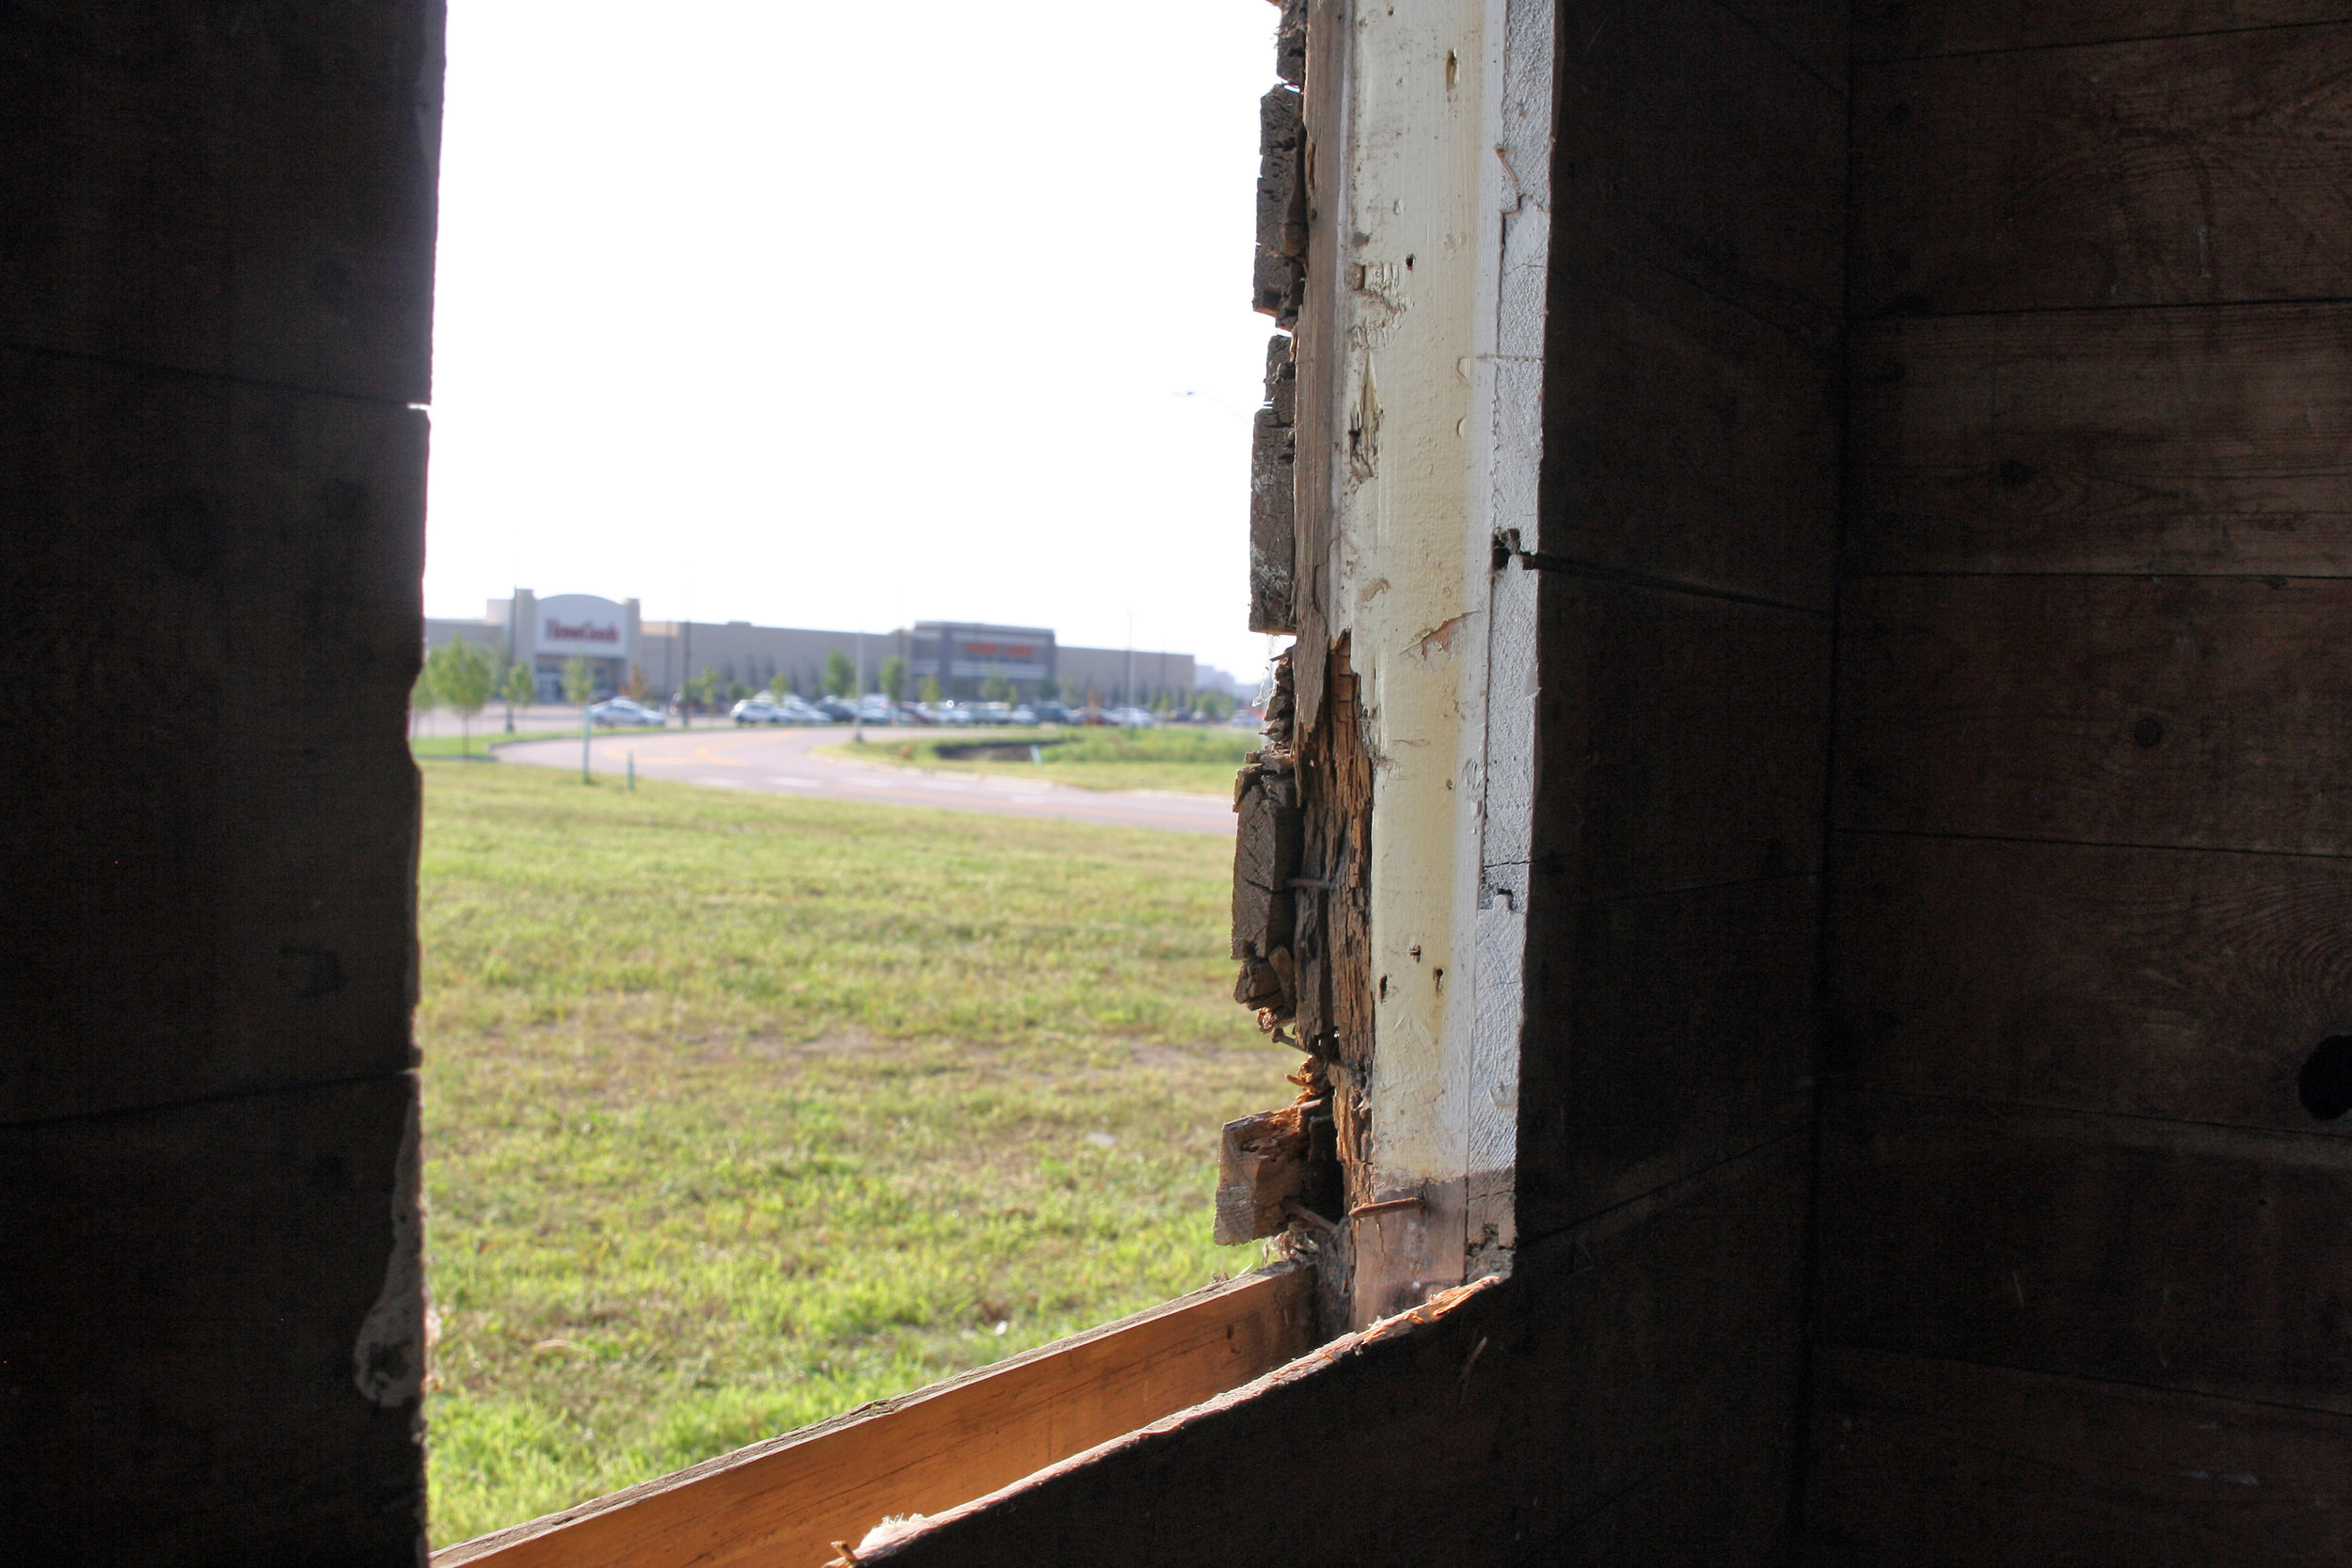 The new development can be seen from the barn's east window.